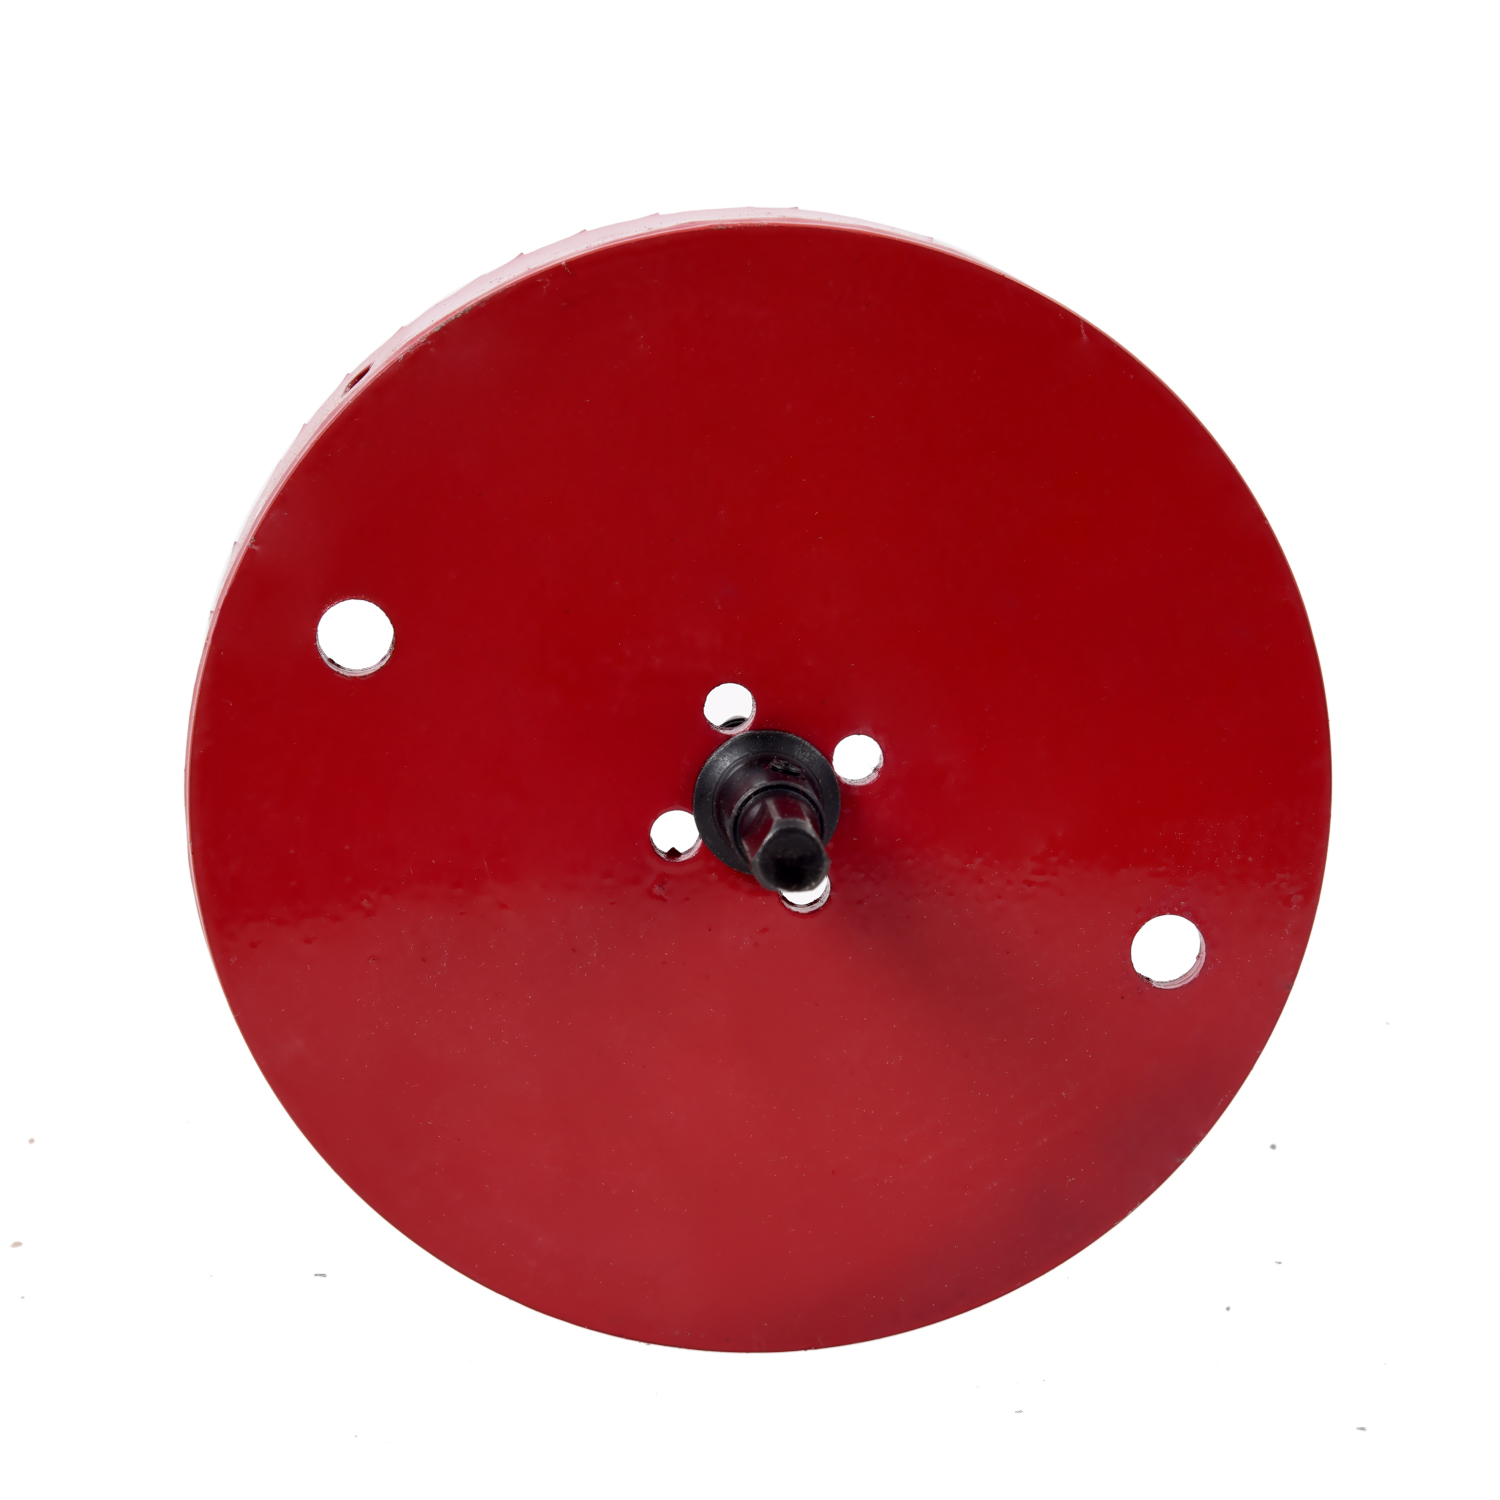 SHGO HOT-Square shank and hole saw and drill bimetal 150 mm red sds plus shank concrete cement stone 65mm wall hole saw drill 200mm square rod